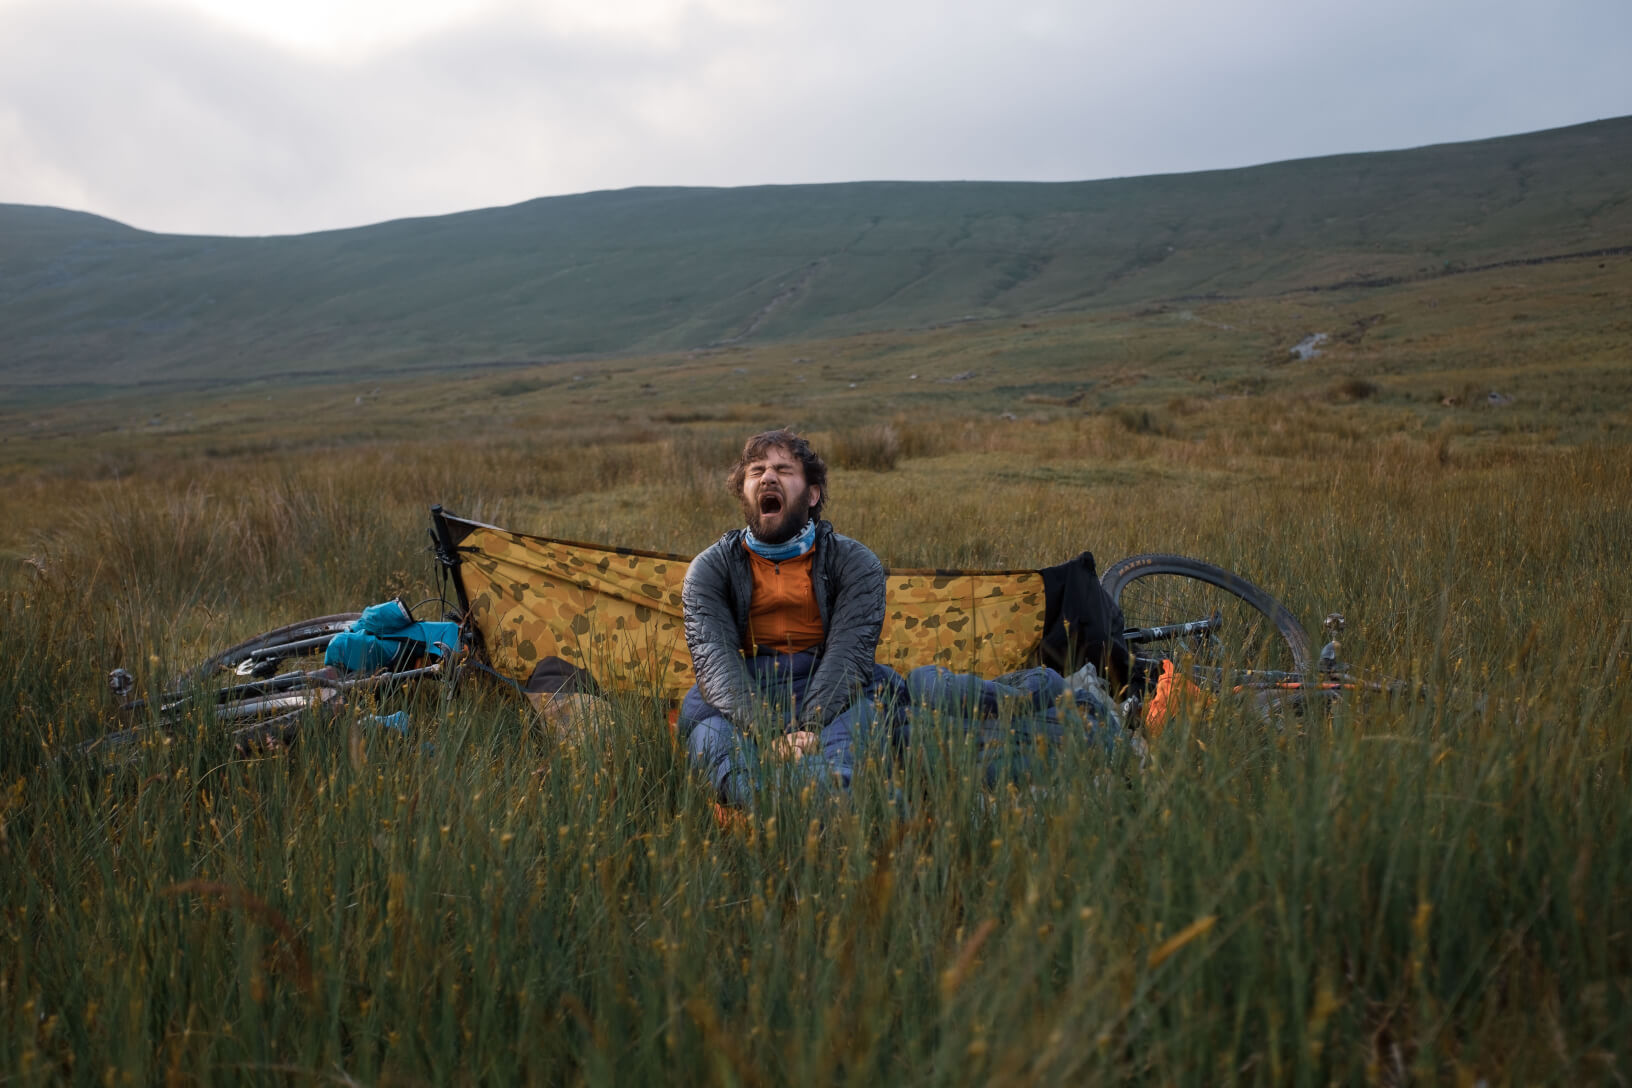 Christian Smith of Outdoor Provisions bikepacking in remote countryside